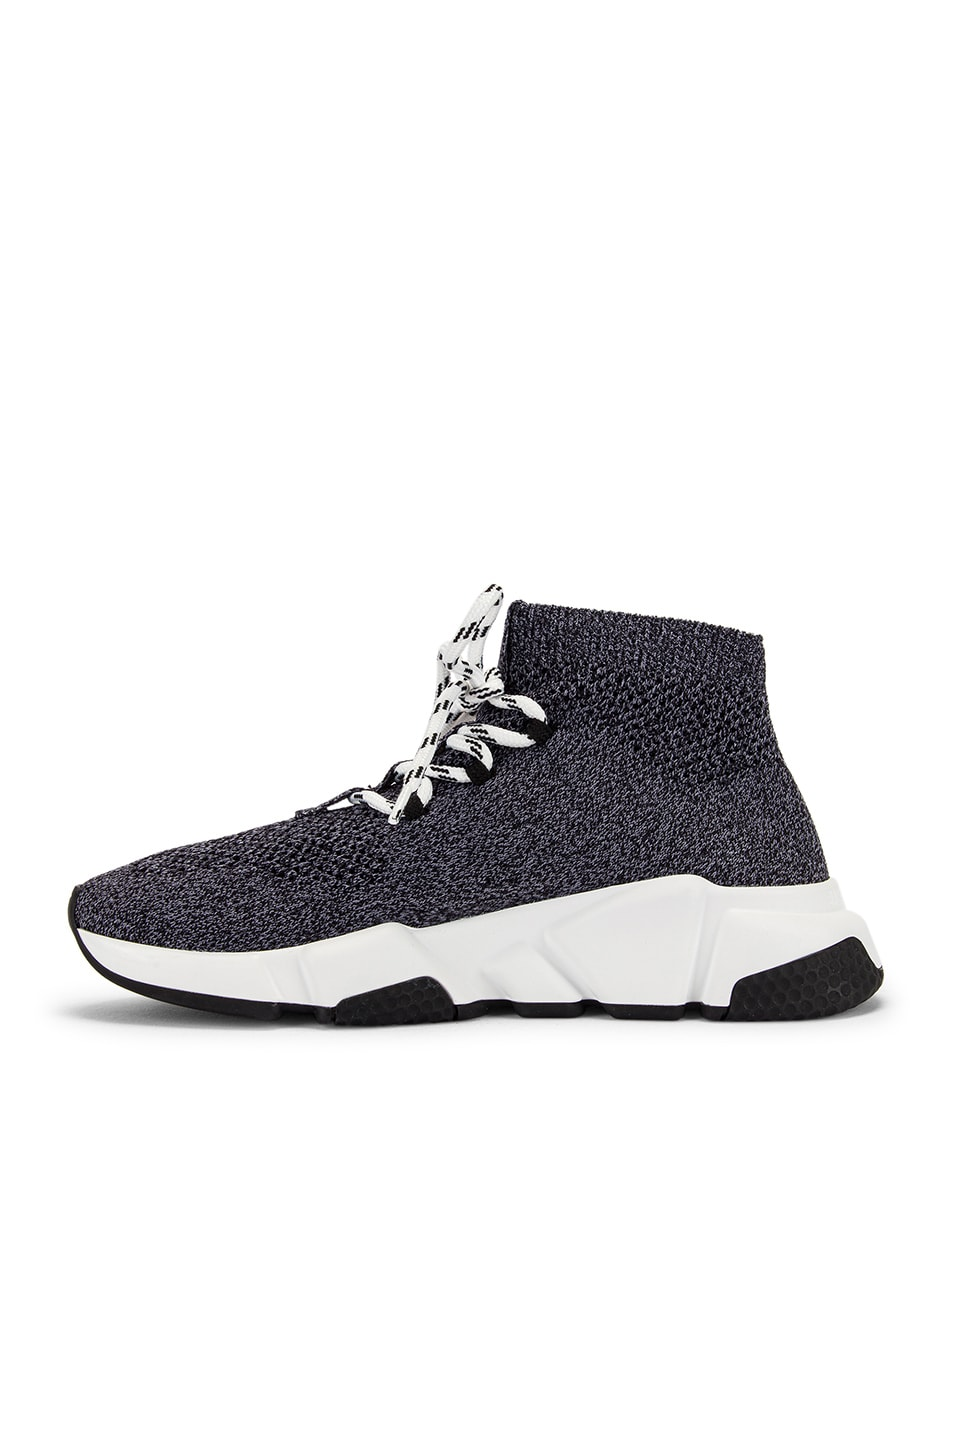 Image 5 of Balenciaga Speed Lace Up Knit Sneakers in Black & White